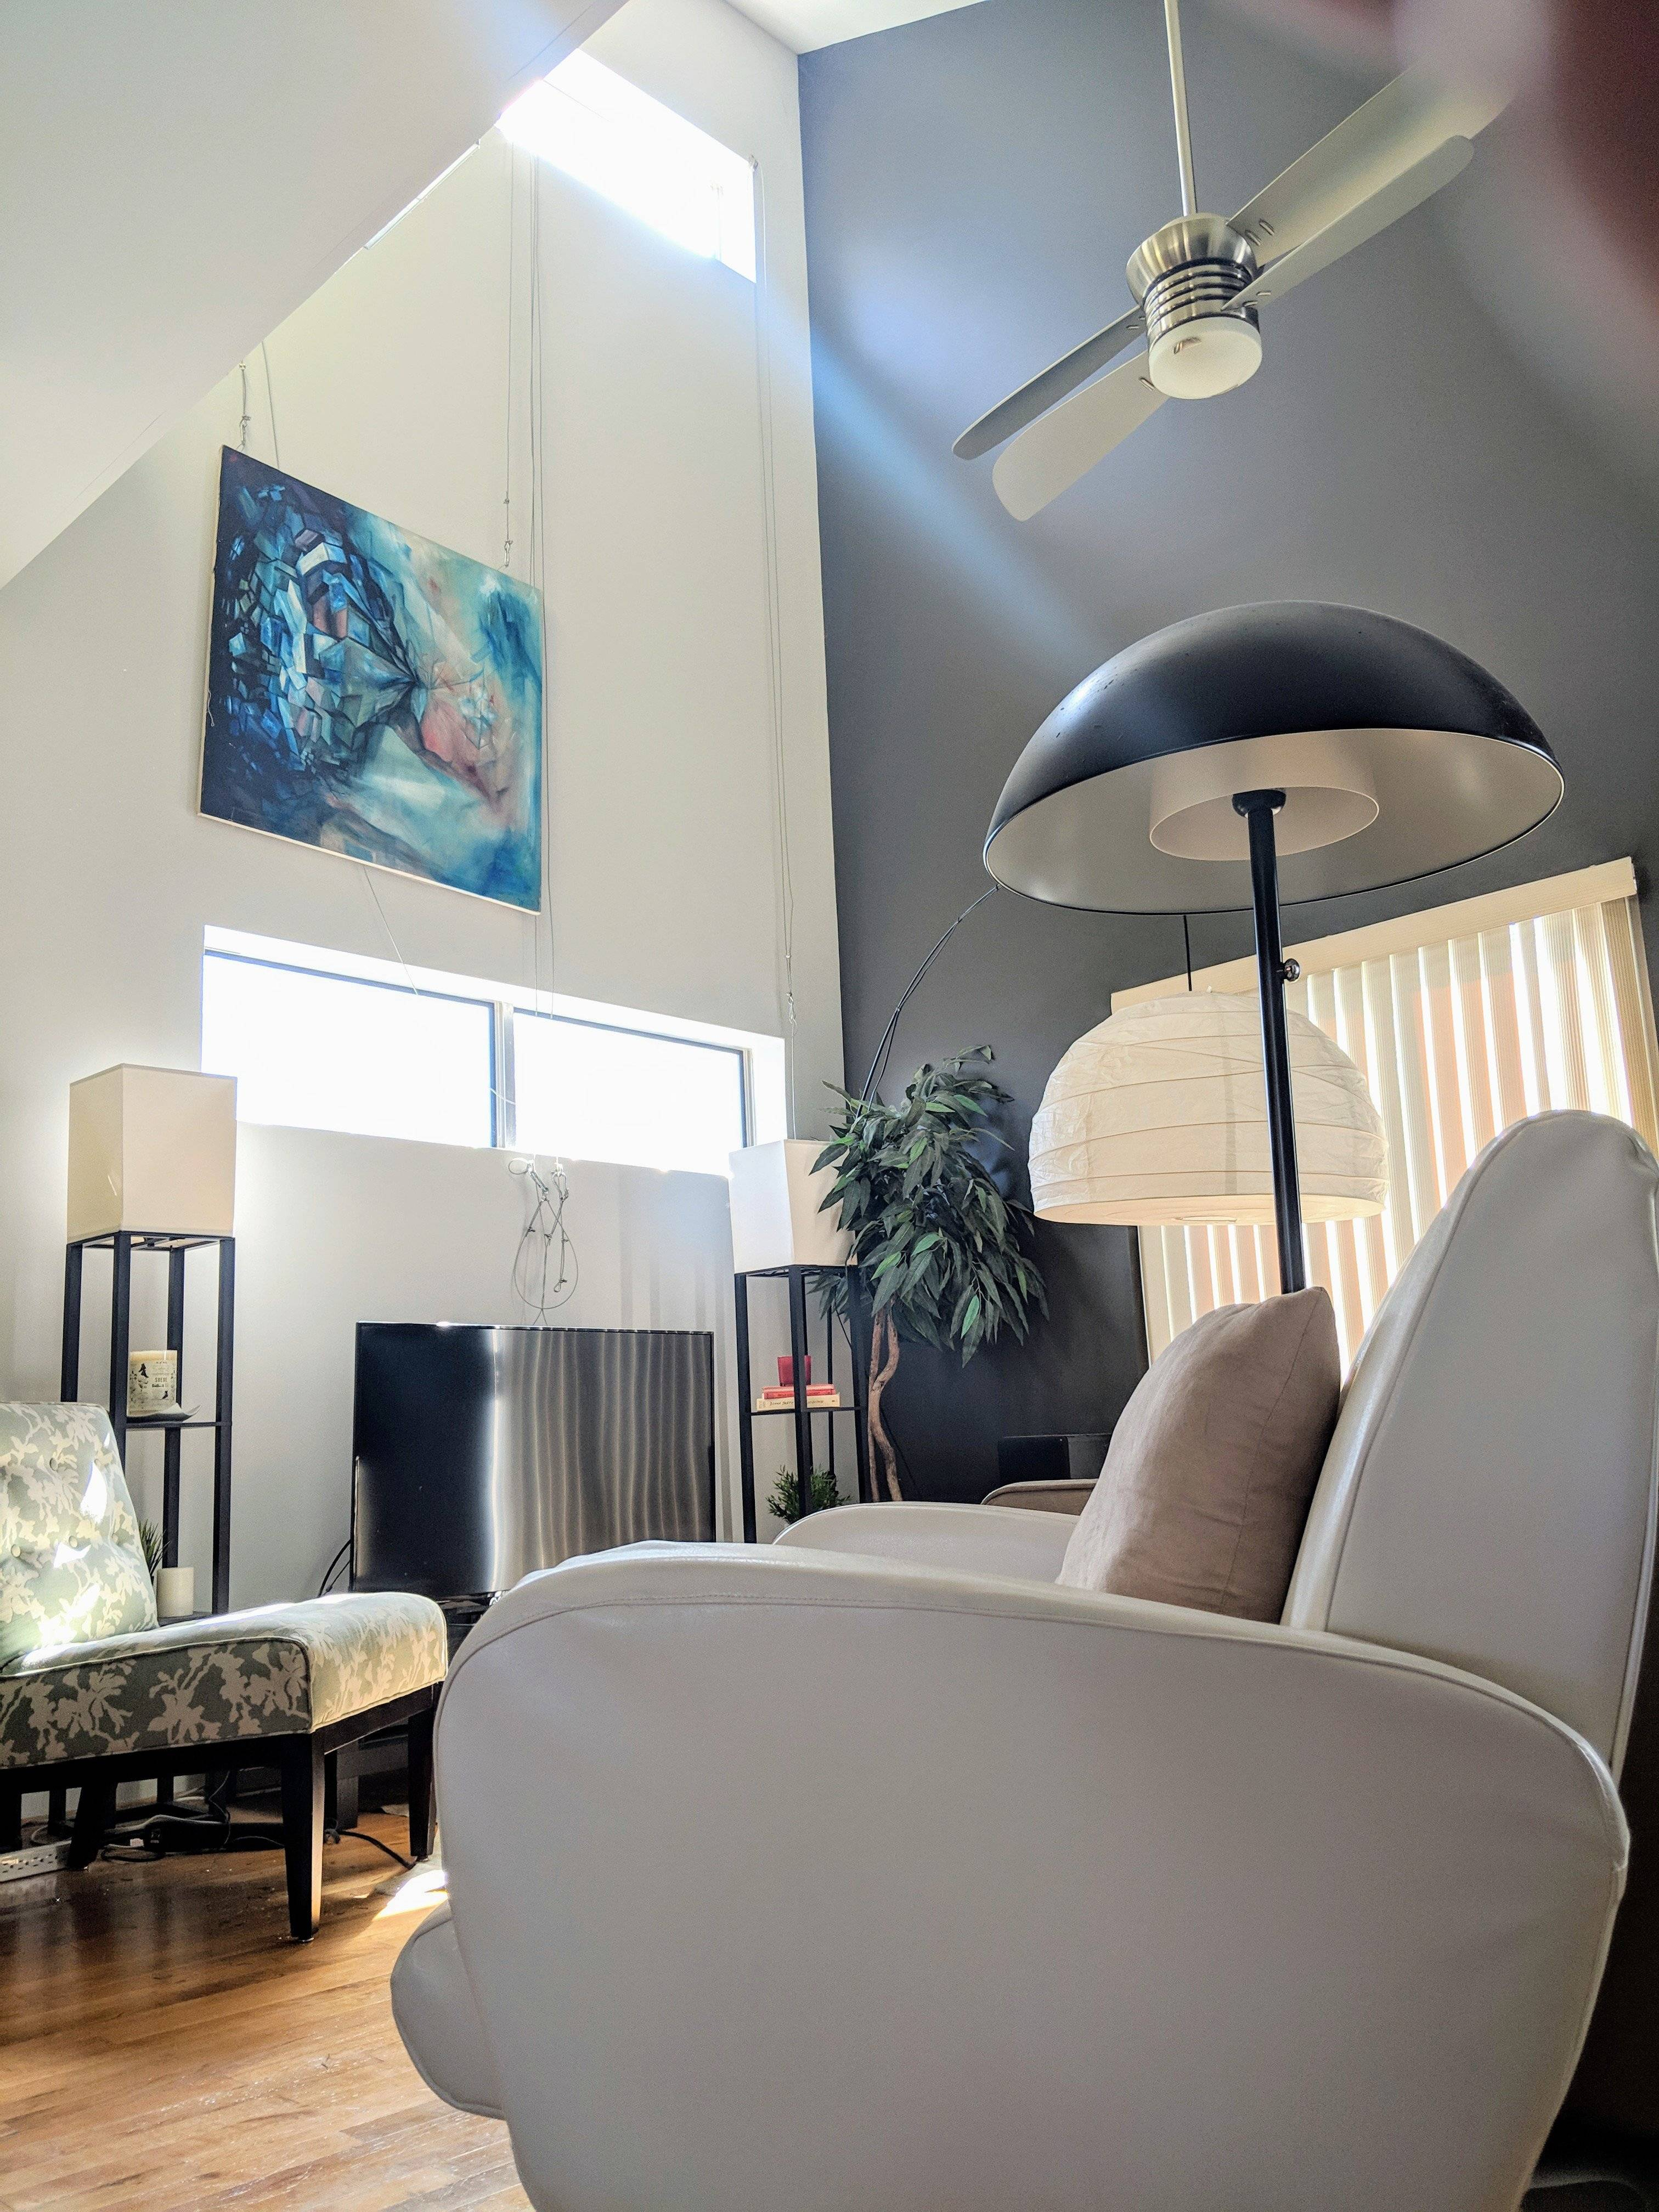 Living Room Detail 2, great urban features and modern art